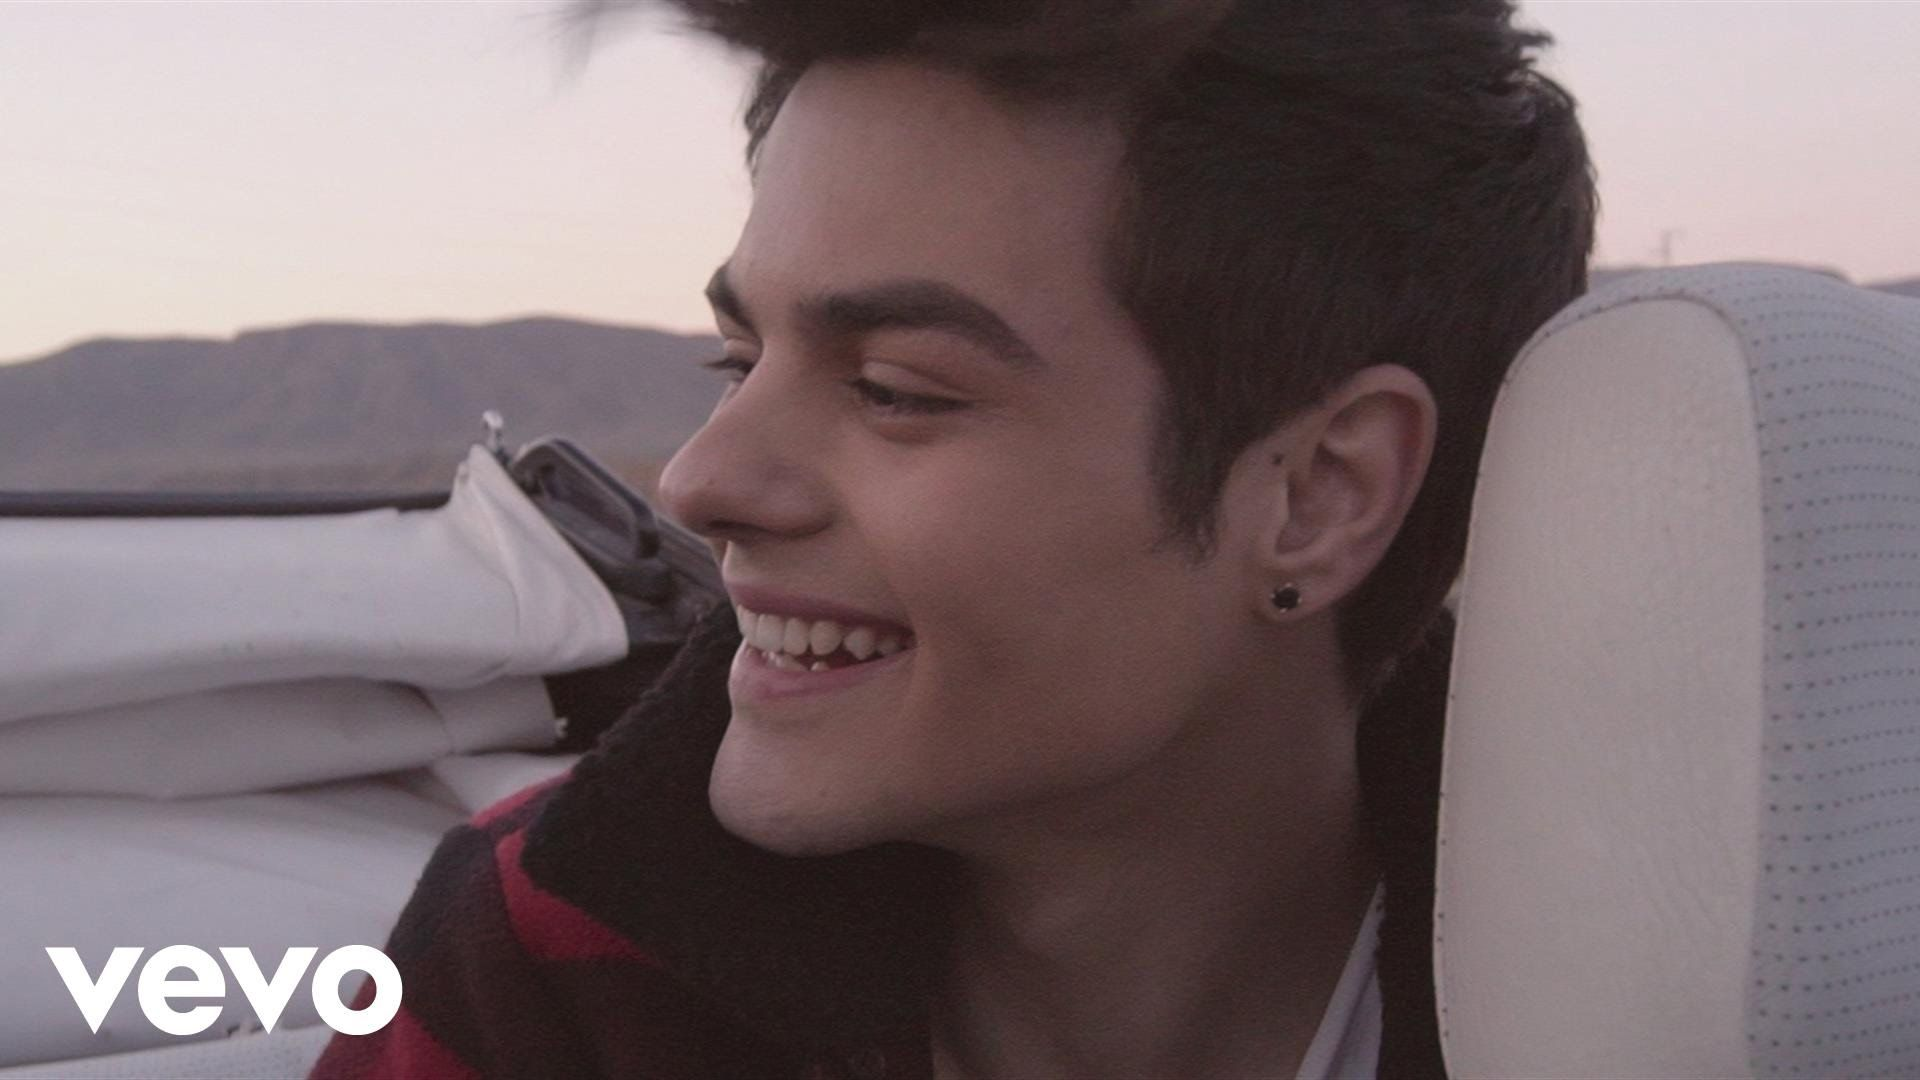 2016 20160629 Abrahammateo Spain Song Areyouready Abraham Mateo Are You Ready Official Video Https You Abraham Mateo Youtube Canal De Youtube